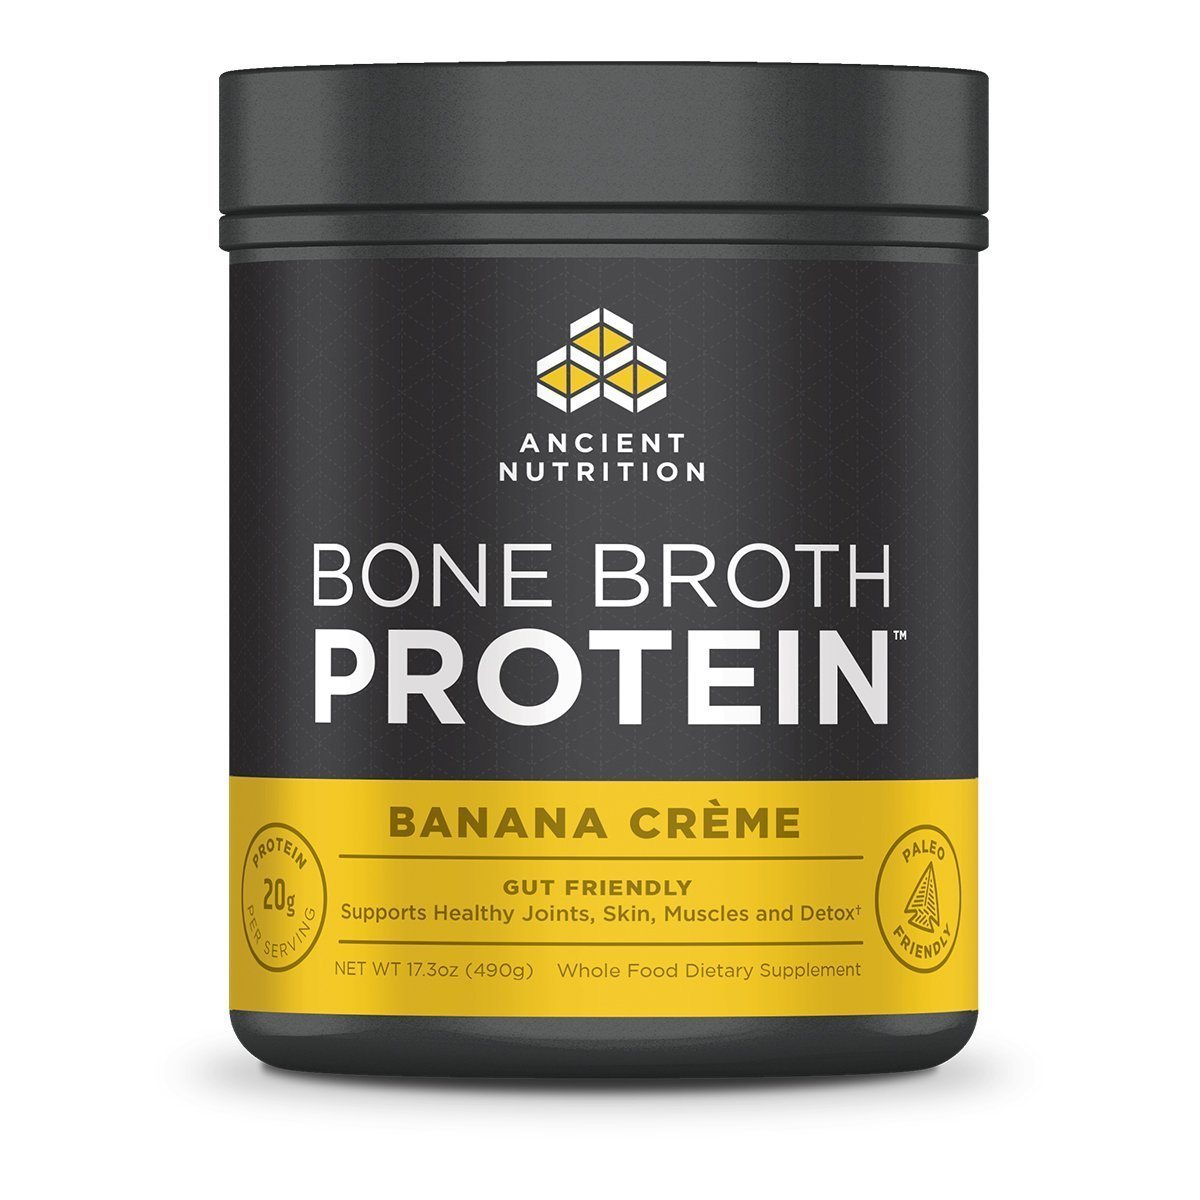 Ancient Nutrition Bone Broth Protein 20 Servings Protein Ancient Nutrition Banana Creme  (1059235528747)